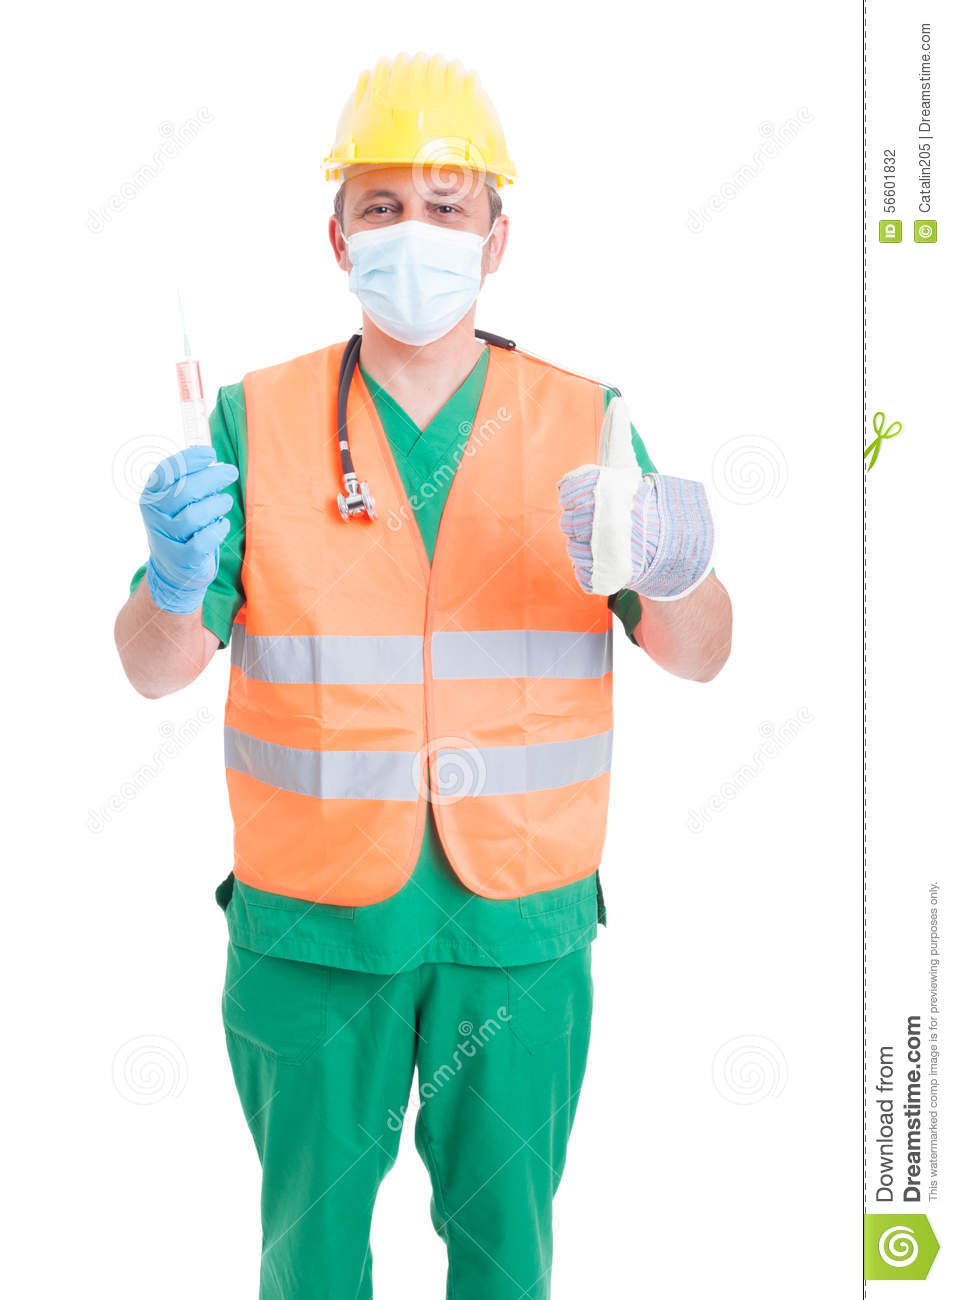 career choice concept as doctor medic or builder stock photo career choice concept as doctor medic or builder